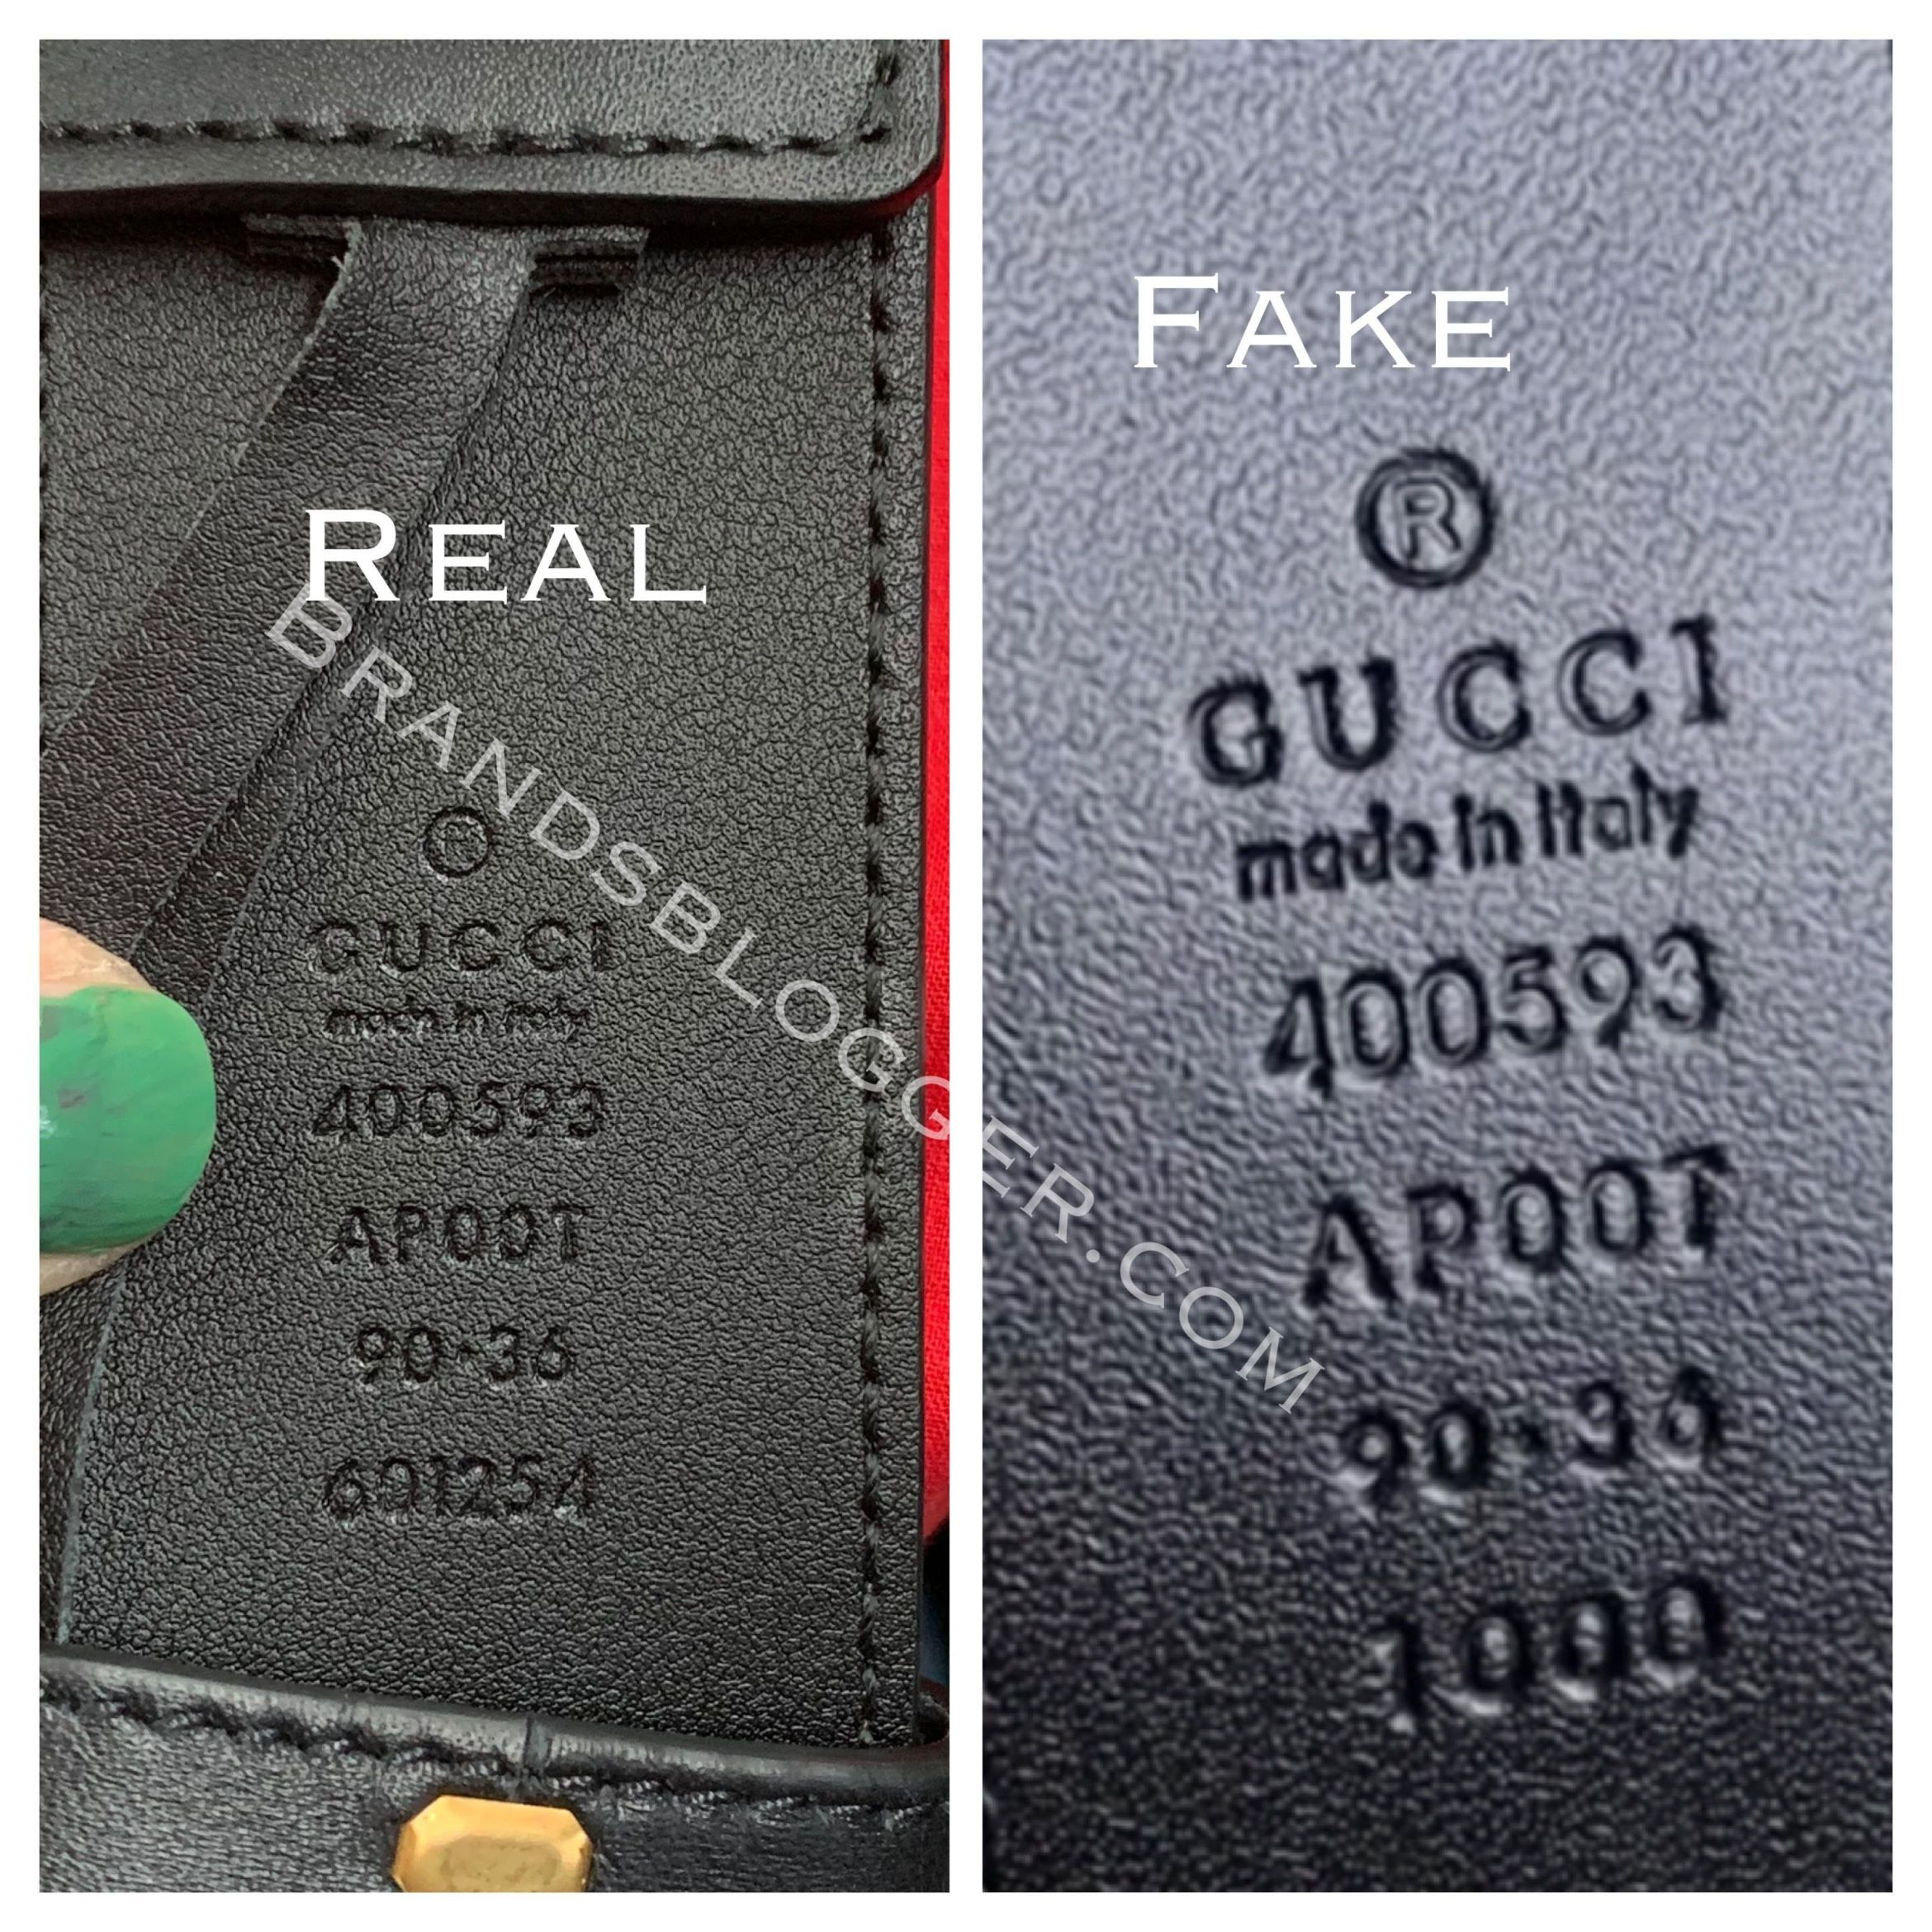 How to spot a fake double g gucci belt brands blogger